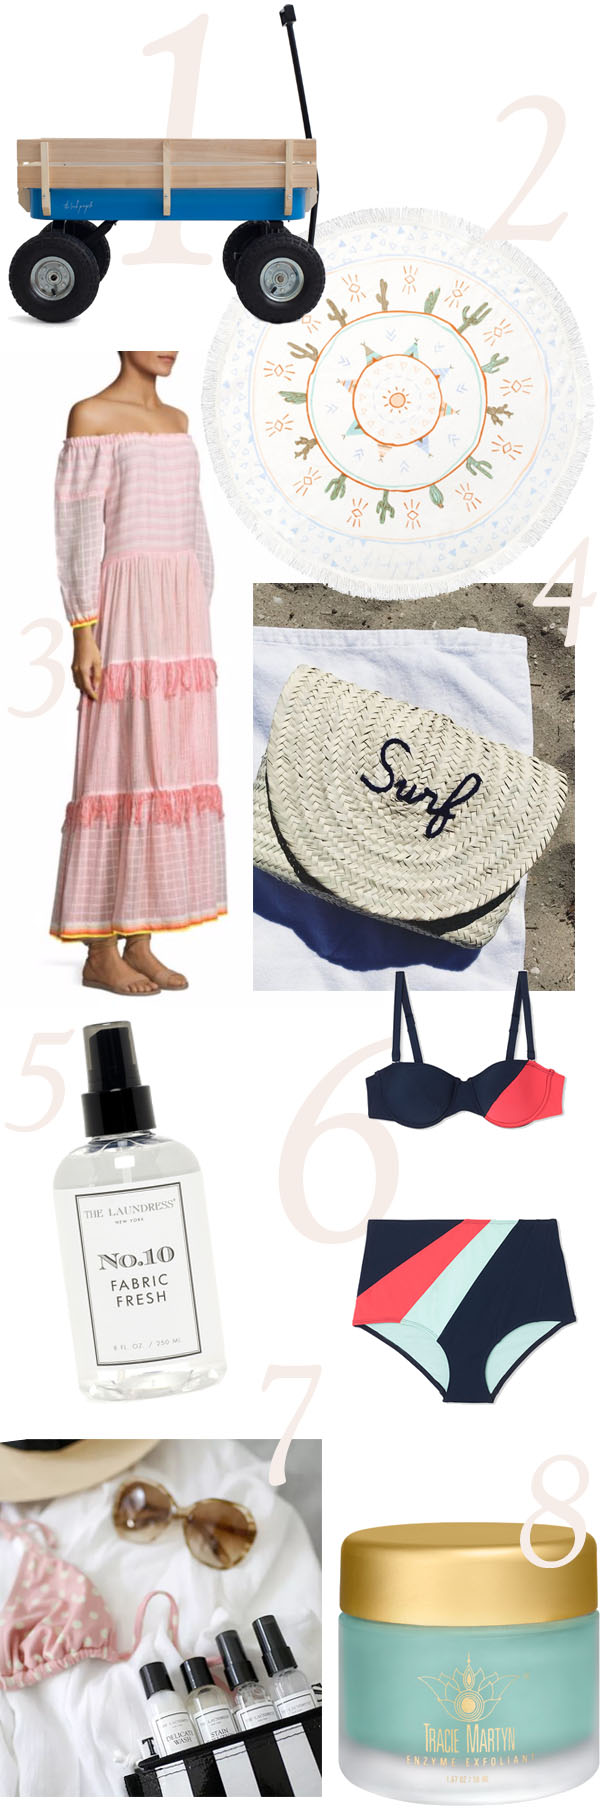 CMSPage_Things We Love | Lindsey's Birthday_ONE_SIZE_IMAGE_01